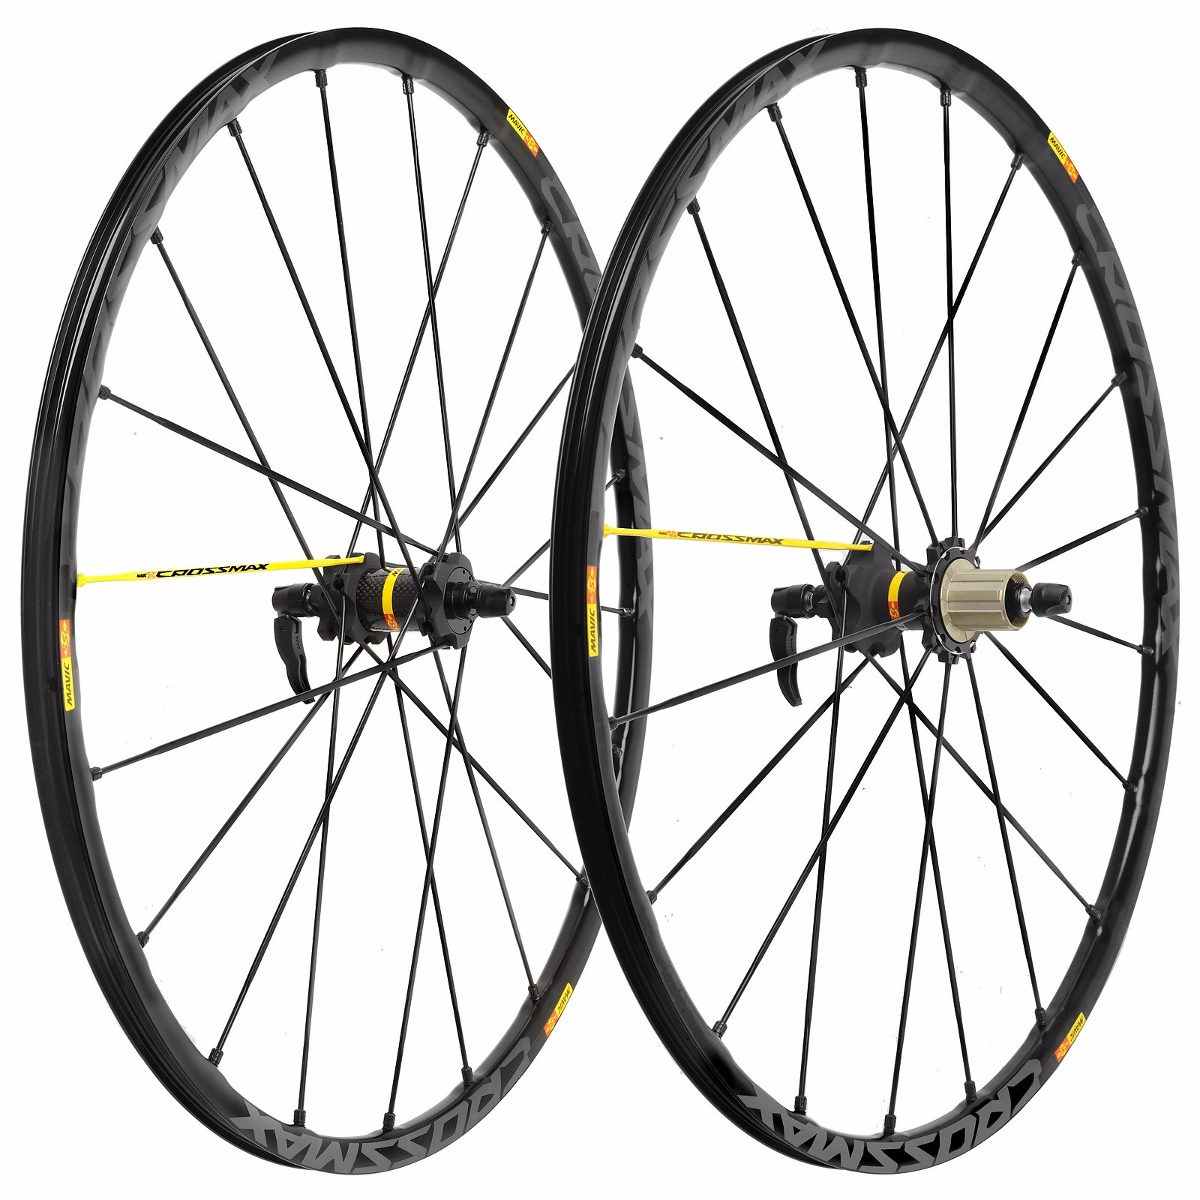 rodas mavic crossmax sl pro 29er 2016 lan amento r em mercado livre. Black Bedroom Furniture Sets. Home Design Ideas